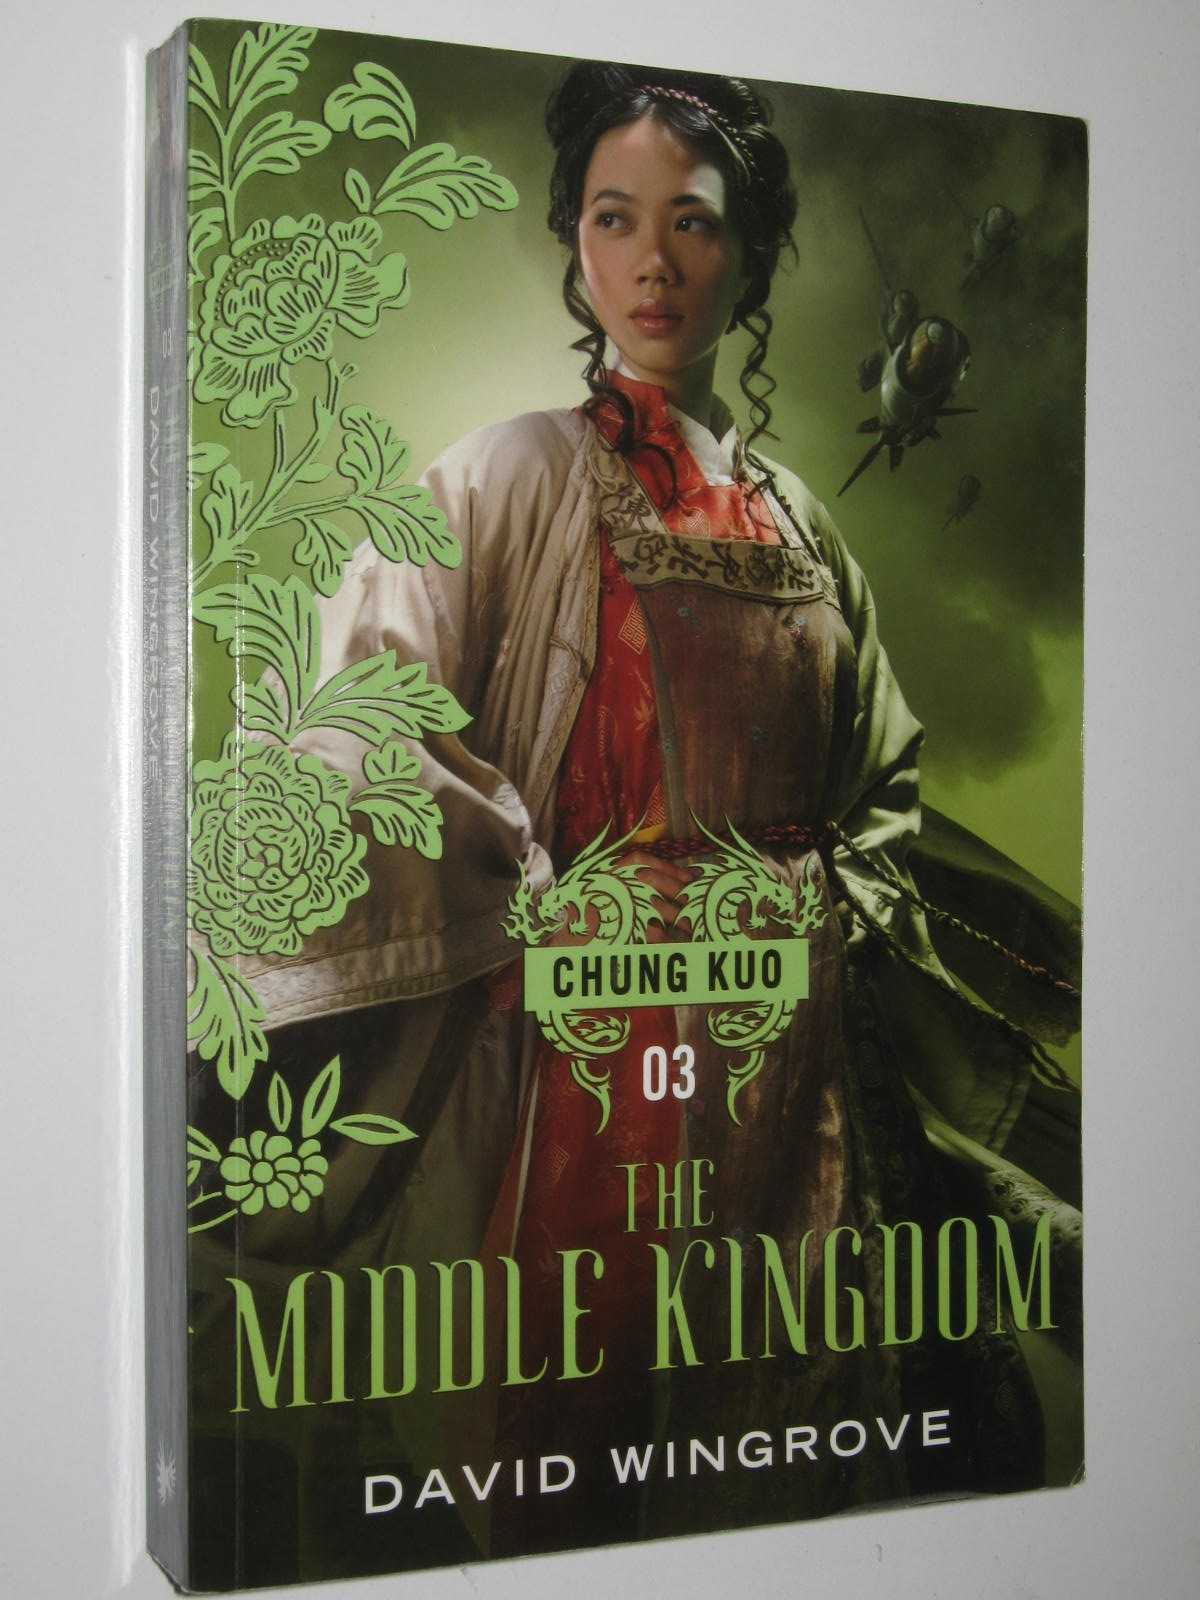 Image for The Middle Kingdom - Chung Kuo Series #3